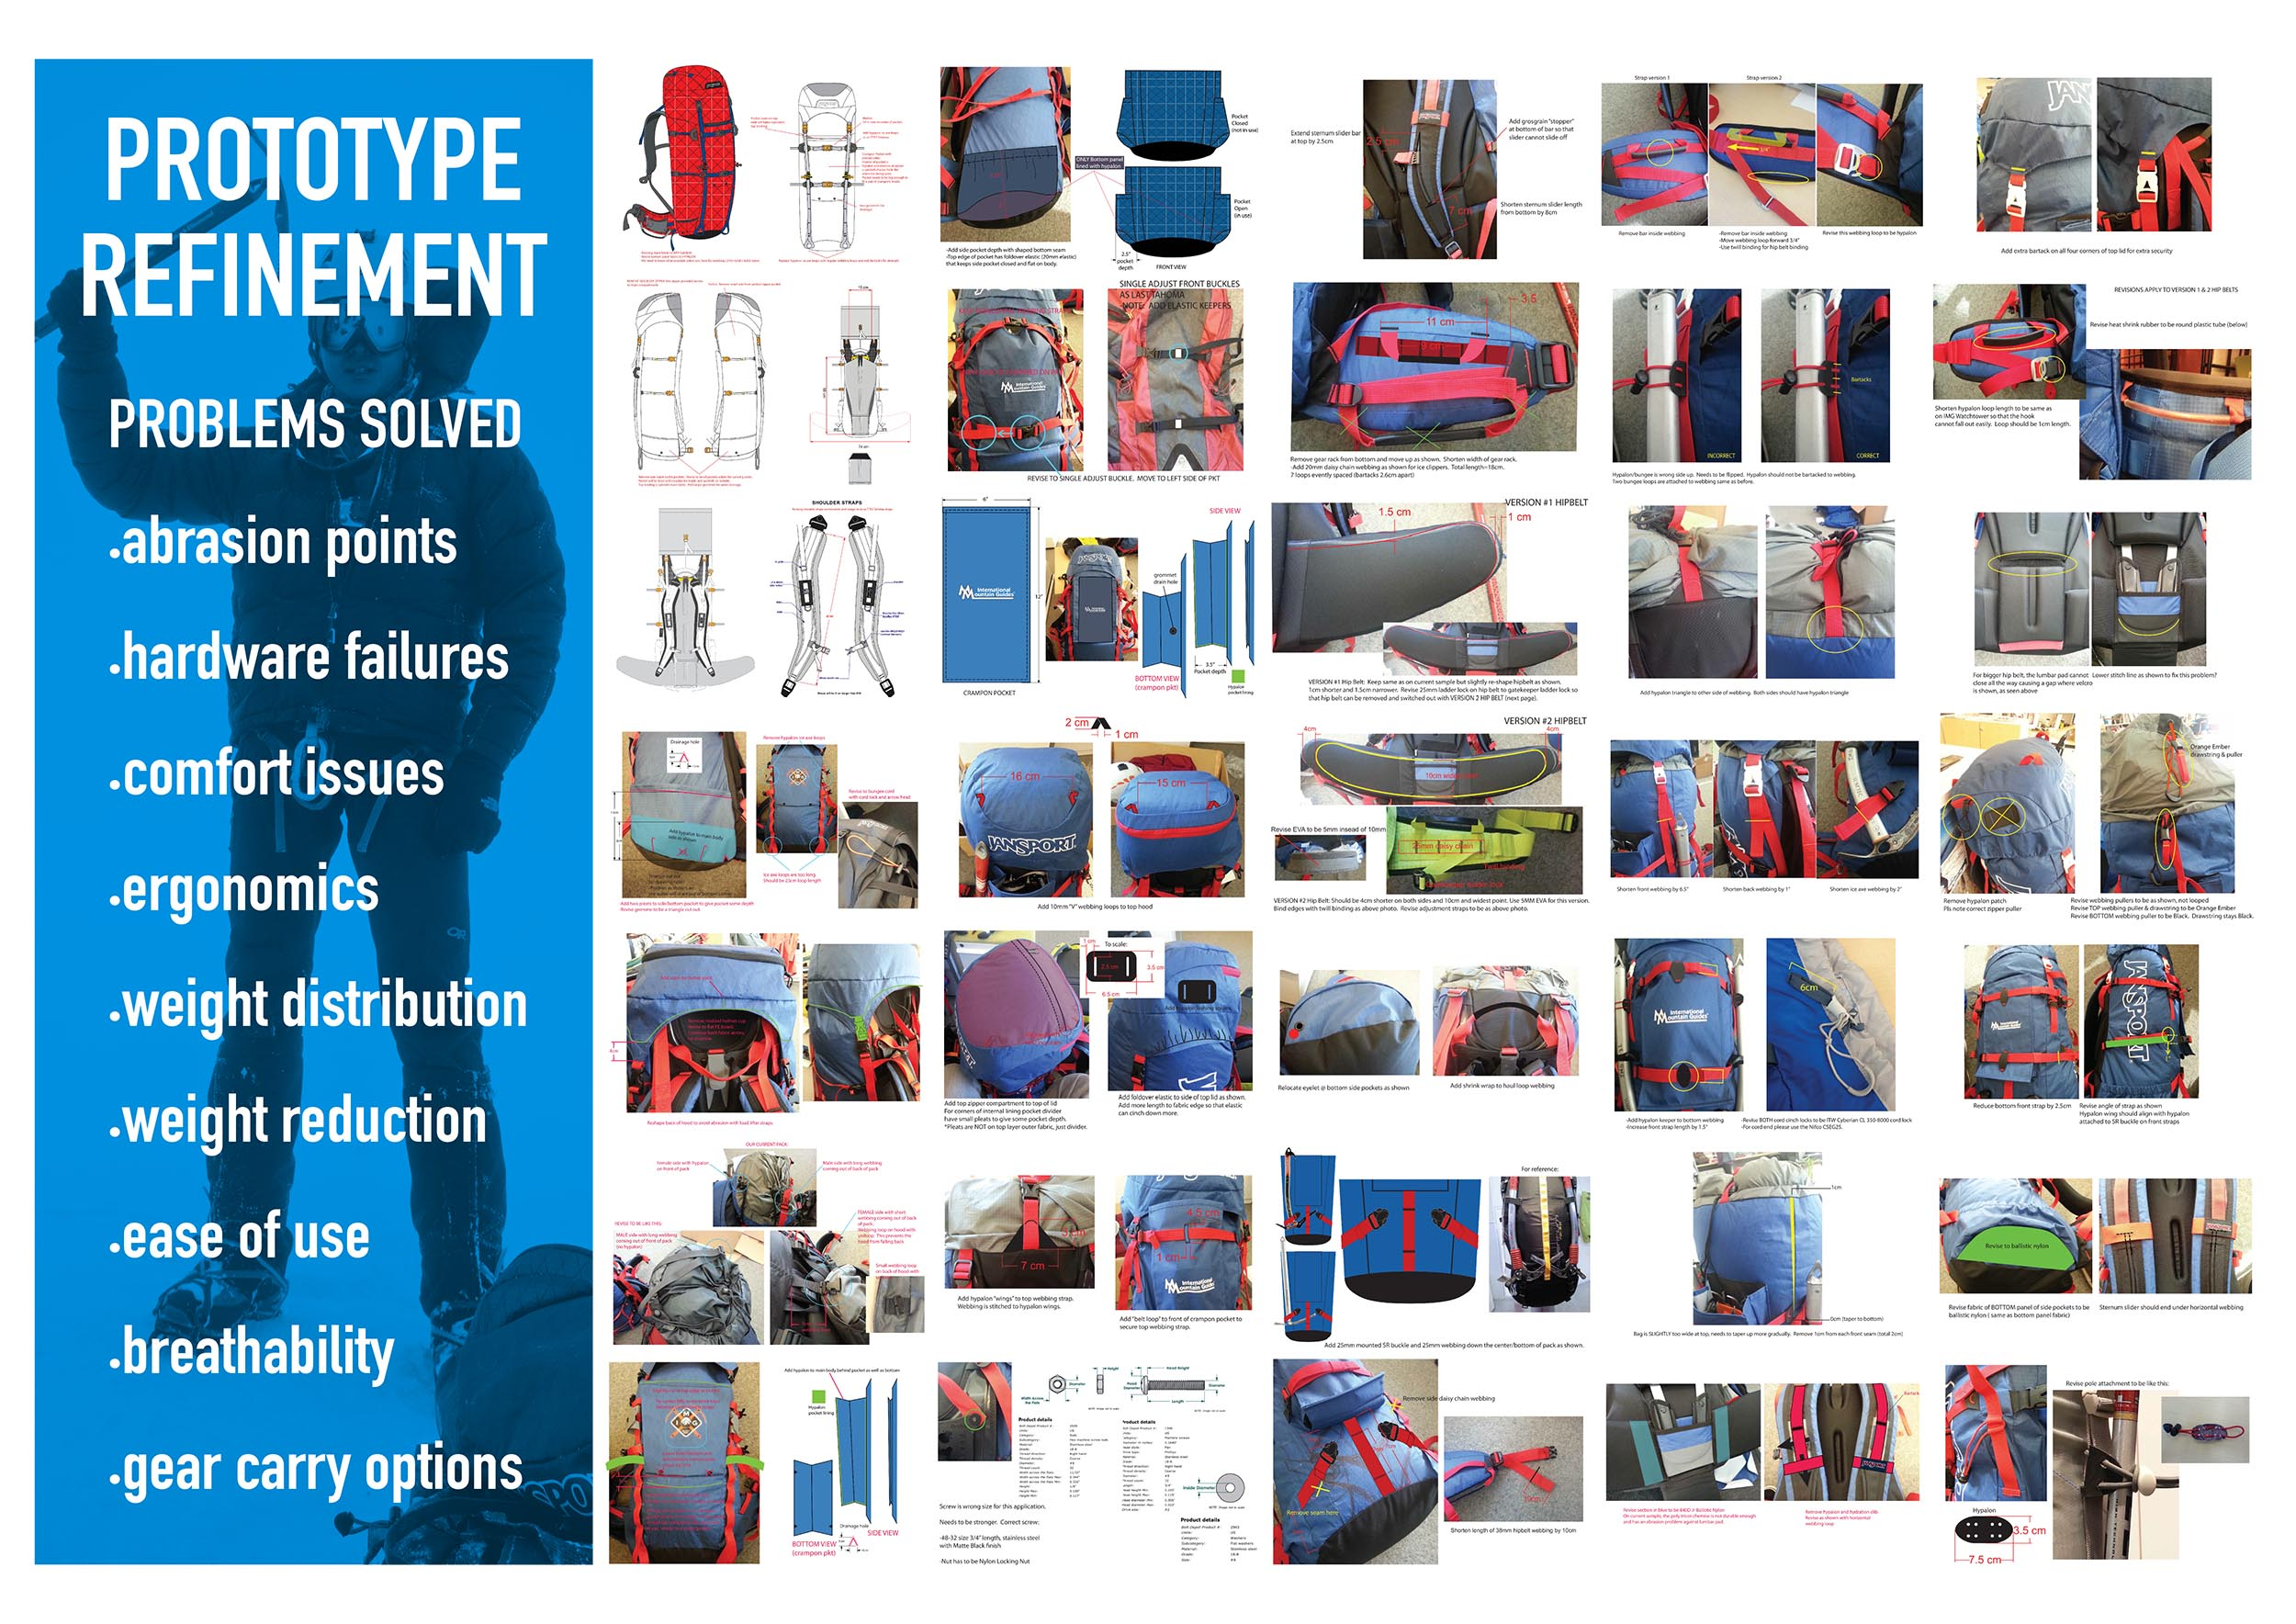 International Mountain Guides Backpack Design Prototype Prototyping Product Development